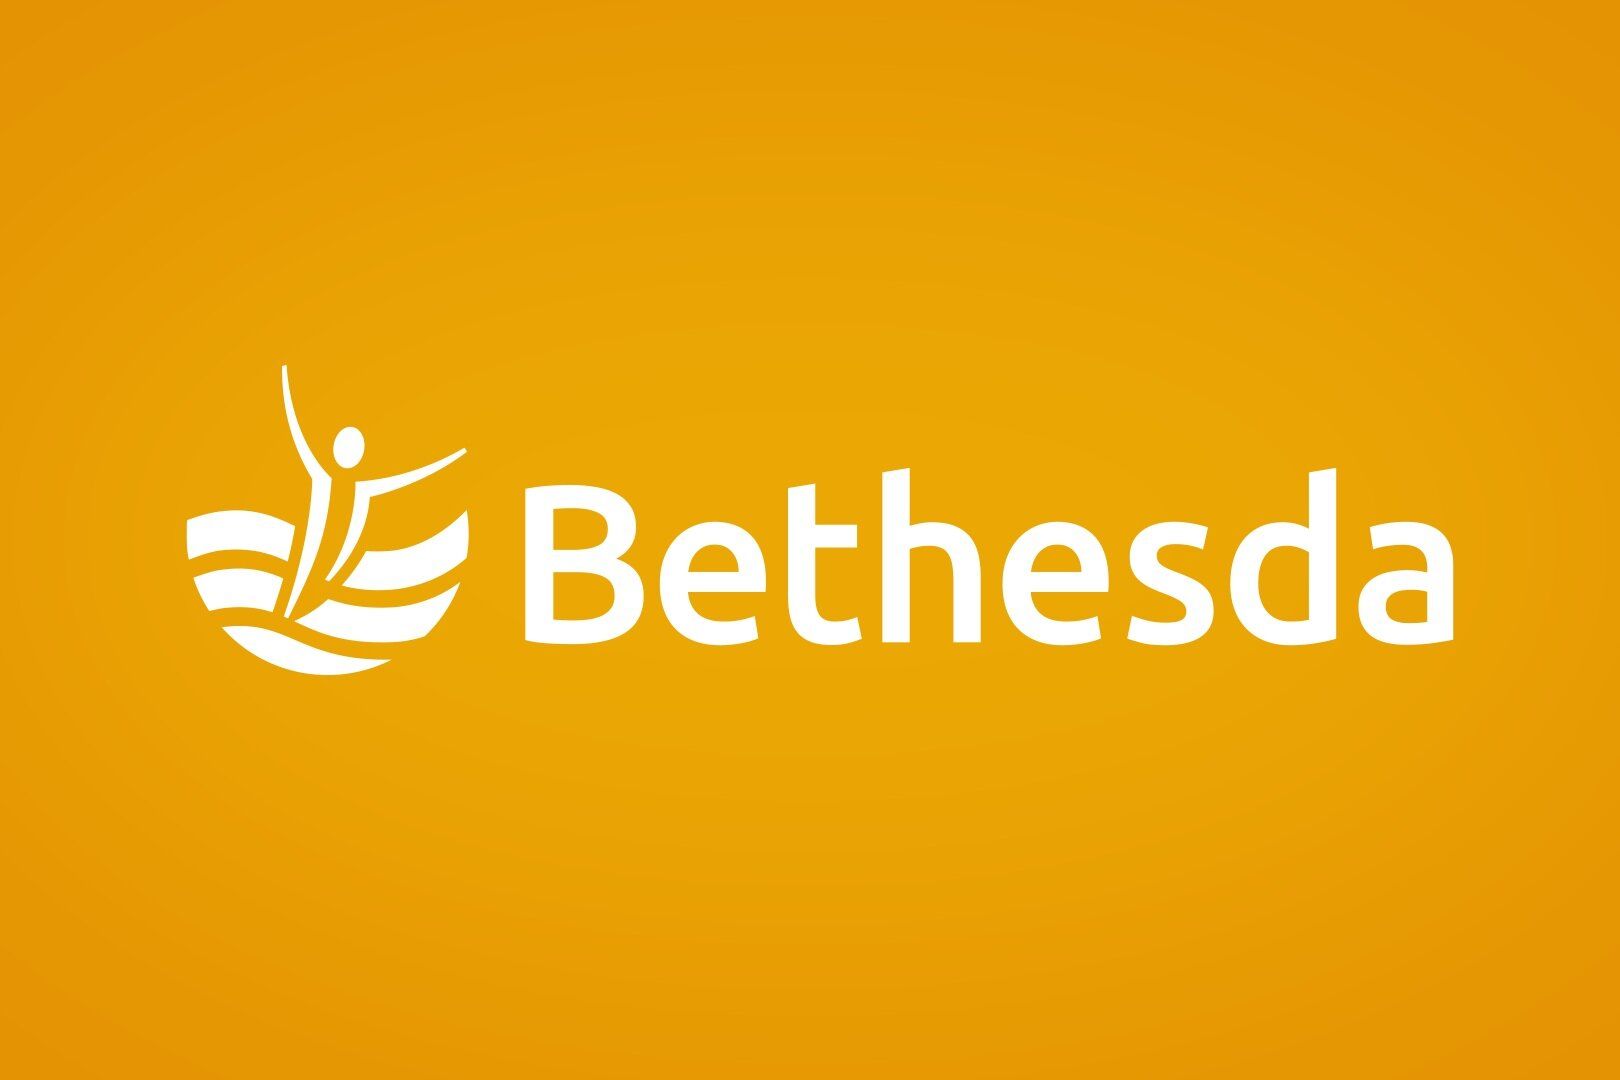 Website - Bethesda Lutheran Communities is a nonprofit organization that helps individuals with developmental and intellectual disabilities. I contributed to the IA and led the visual design to deploy this website redesign.